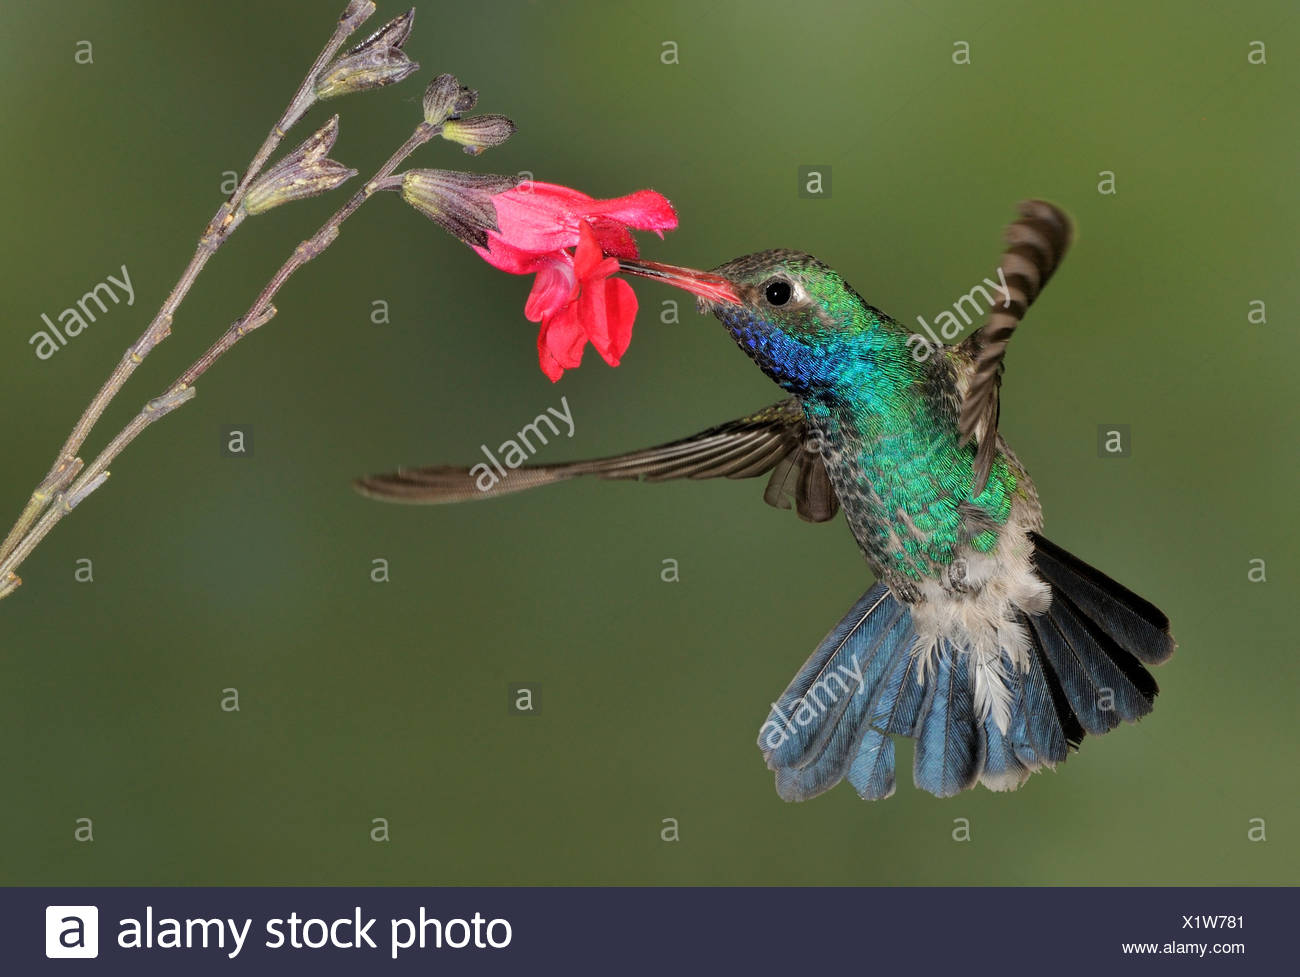 Homme large-billed Hummingbird (Cynanthus latirostris) planer à côté de fleur à tête d'éléphant étang, Arizona, USA Photo Stock